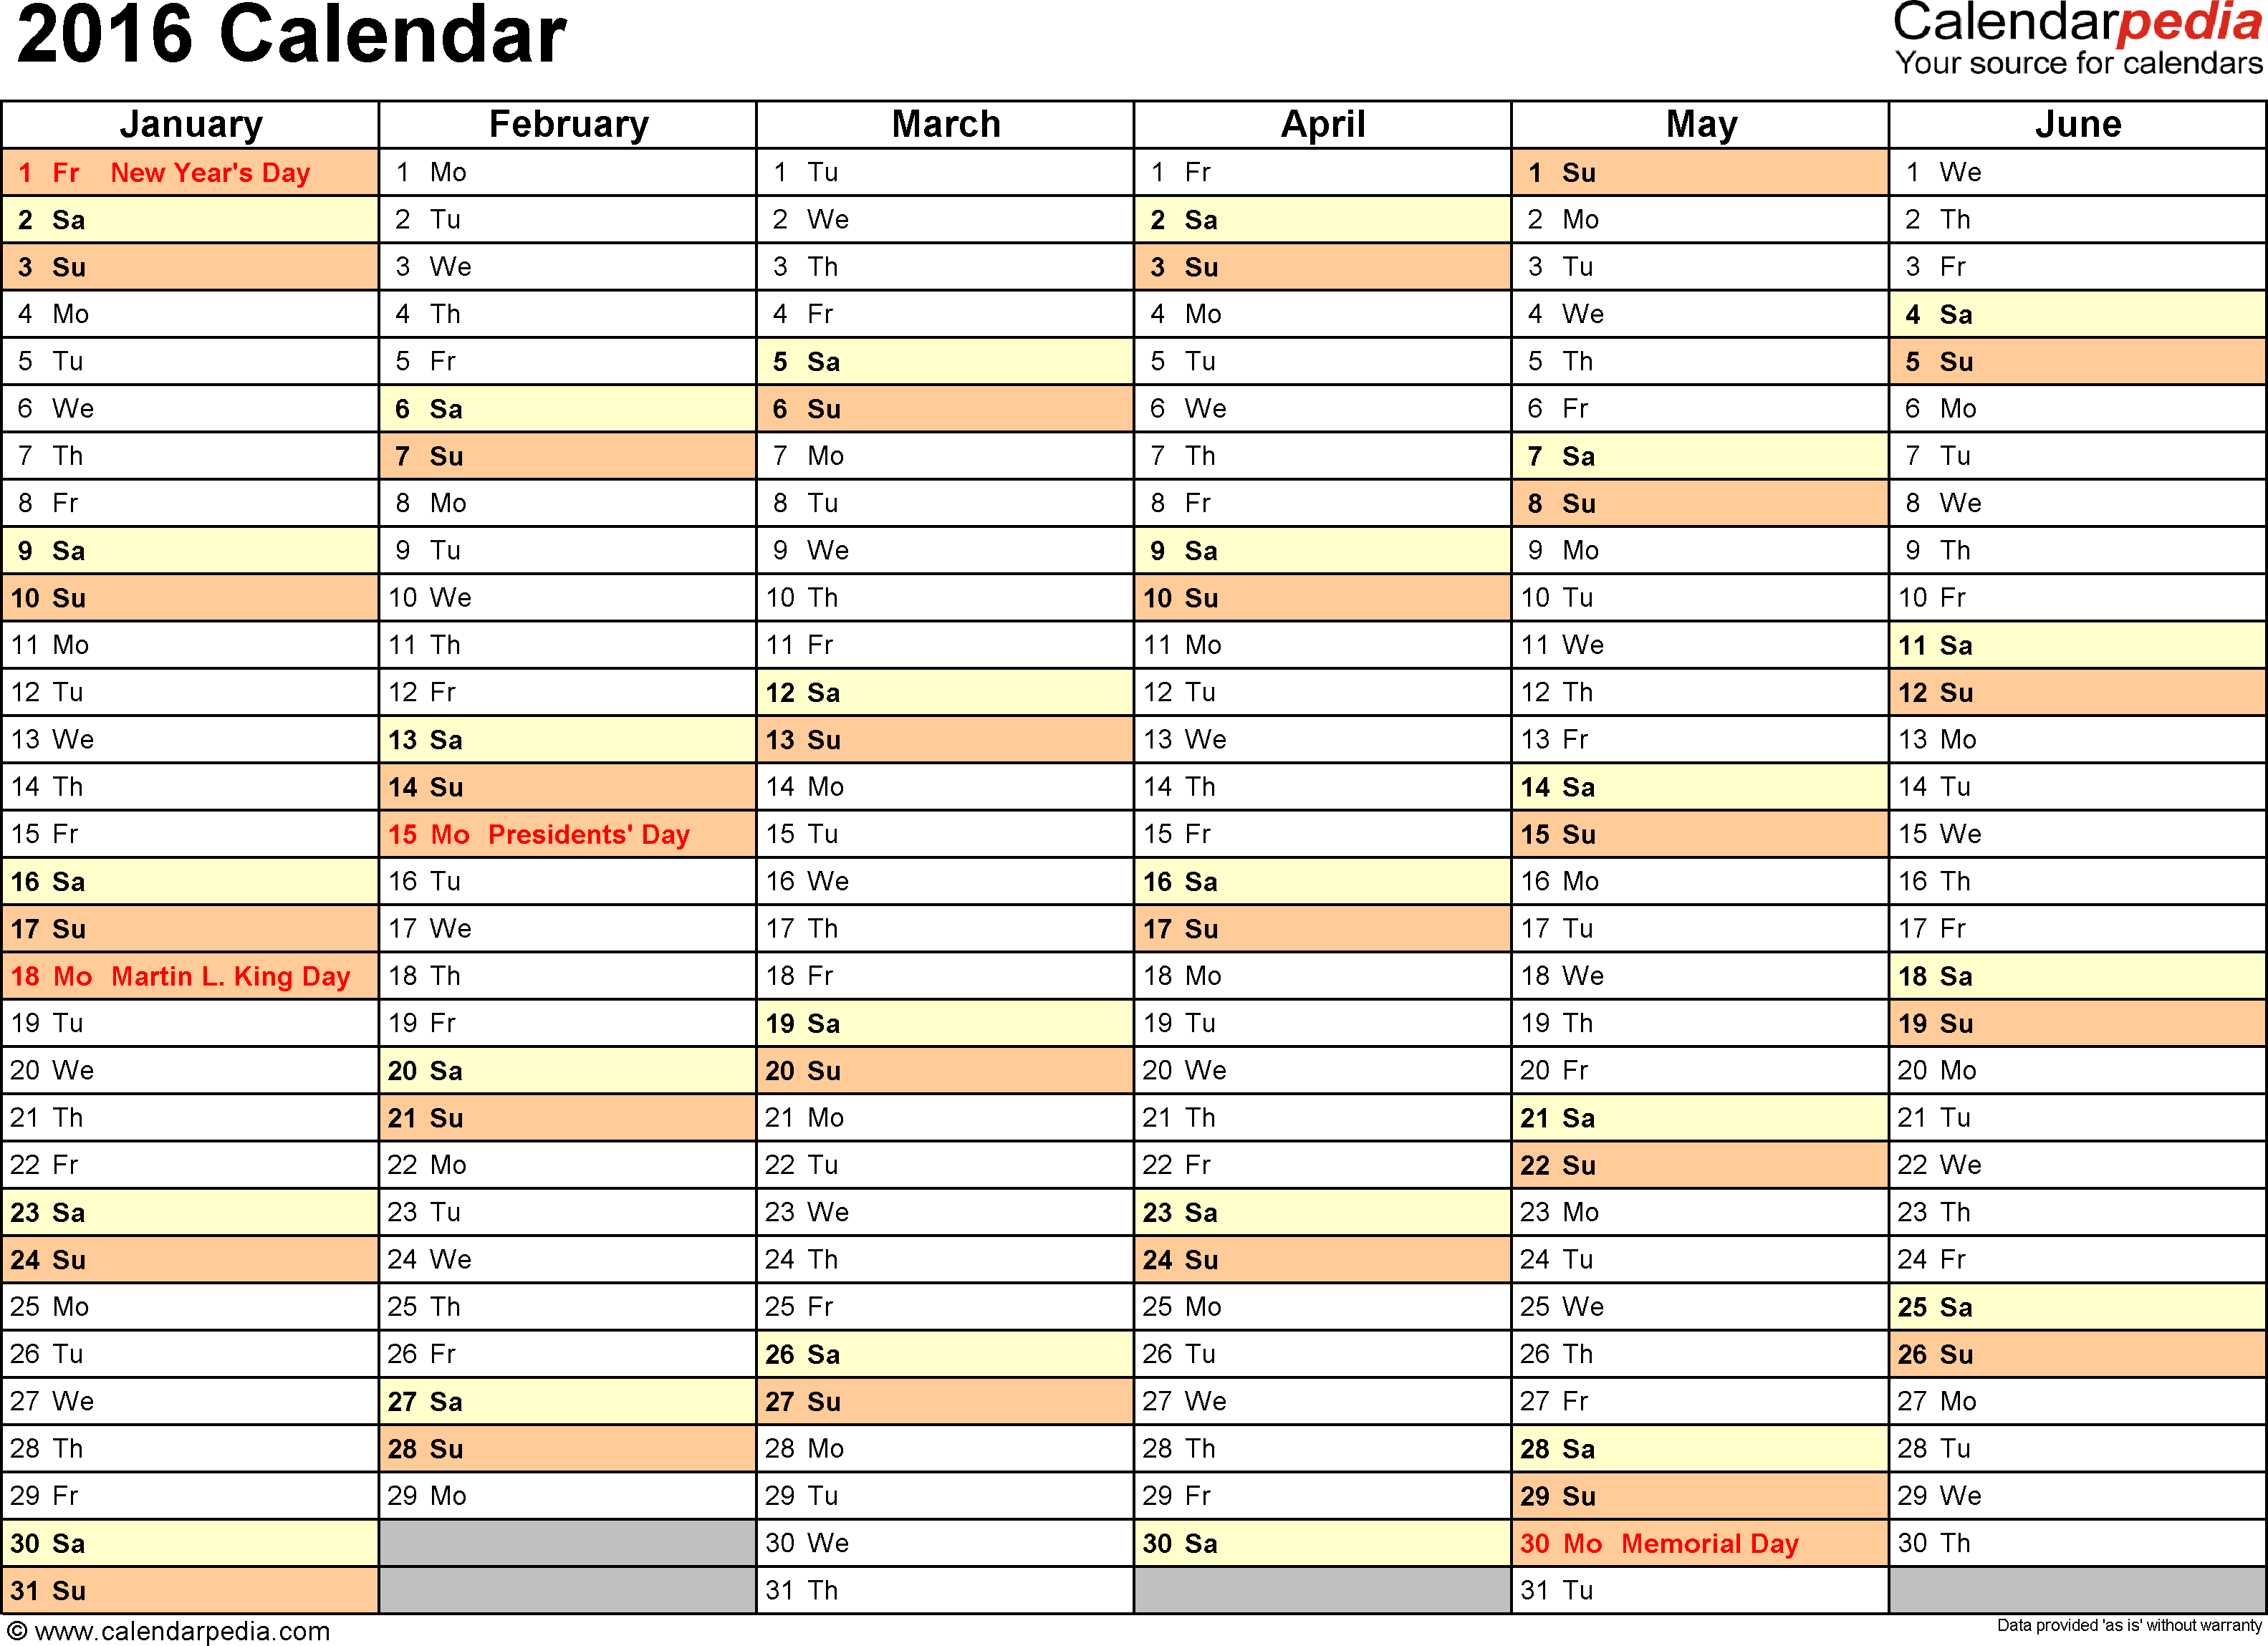 Ediblewildsus  Seductive  Calendar  Download  Free Printable Excel Templates Xls With Goodlooking Template   Calendar For Excel Months Horizontally  Pages Landscape Orientation With Extraordinary Unprotect Excel Sheet Also What Is Pivot Table In Excel In Addition How To Use Fill Handle In Excel And Excel P Value As Well As How To Unhide All Columns In Excel Additionally How To Select Multiple Rows In Excel From Calendarpediacom With Ediblewildsus  Goodlooking  Calendar  Download  Free Printable Excel Templates Xls With Extraordinary Template   Calendar For Excel Months Horizontally  Pages Landscape Orientation And Seductive Unprotect Excel Sheet Also What Is Pivot Table In Excel In Addition How To Use Fill Handle In Excel From Calendarpediacom